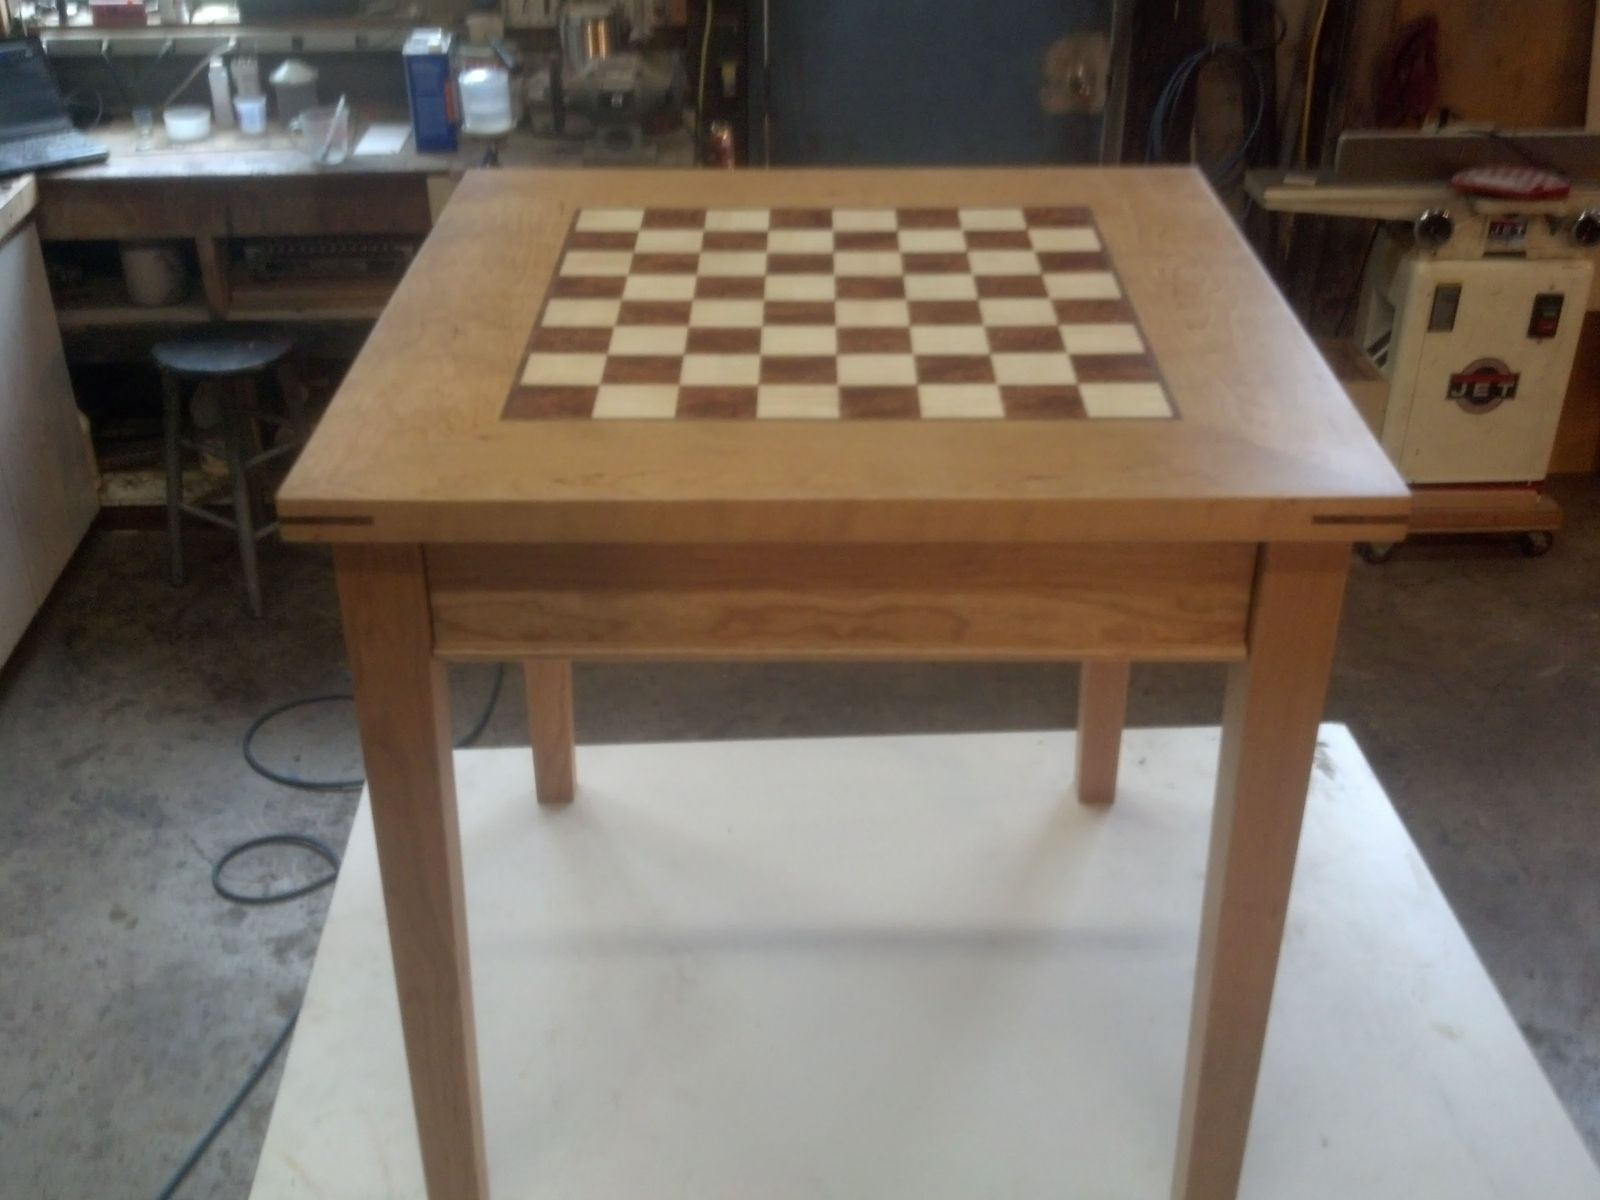 Hand Crafted Cherry Chess Table by Puddle Town Woodworking  : 8644534292 from www.custommade.com size 1600 x 1200 jpeg 124kB